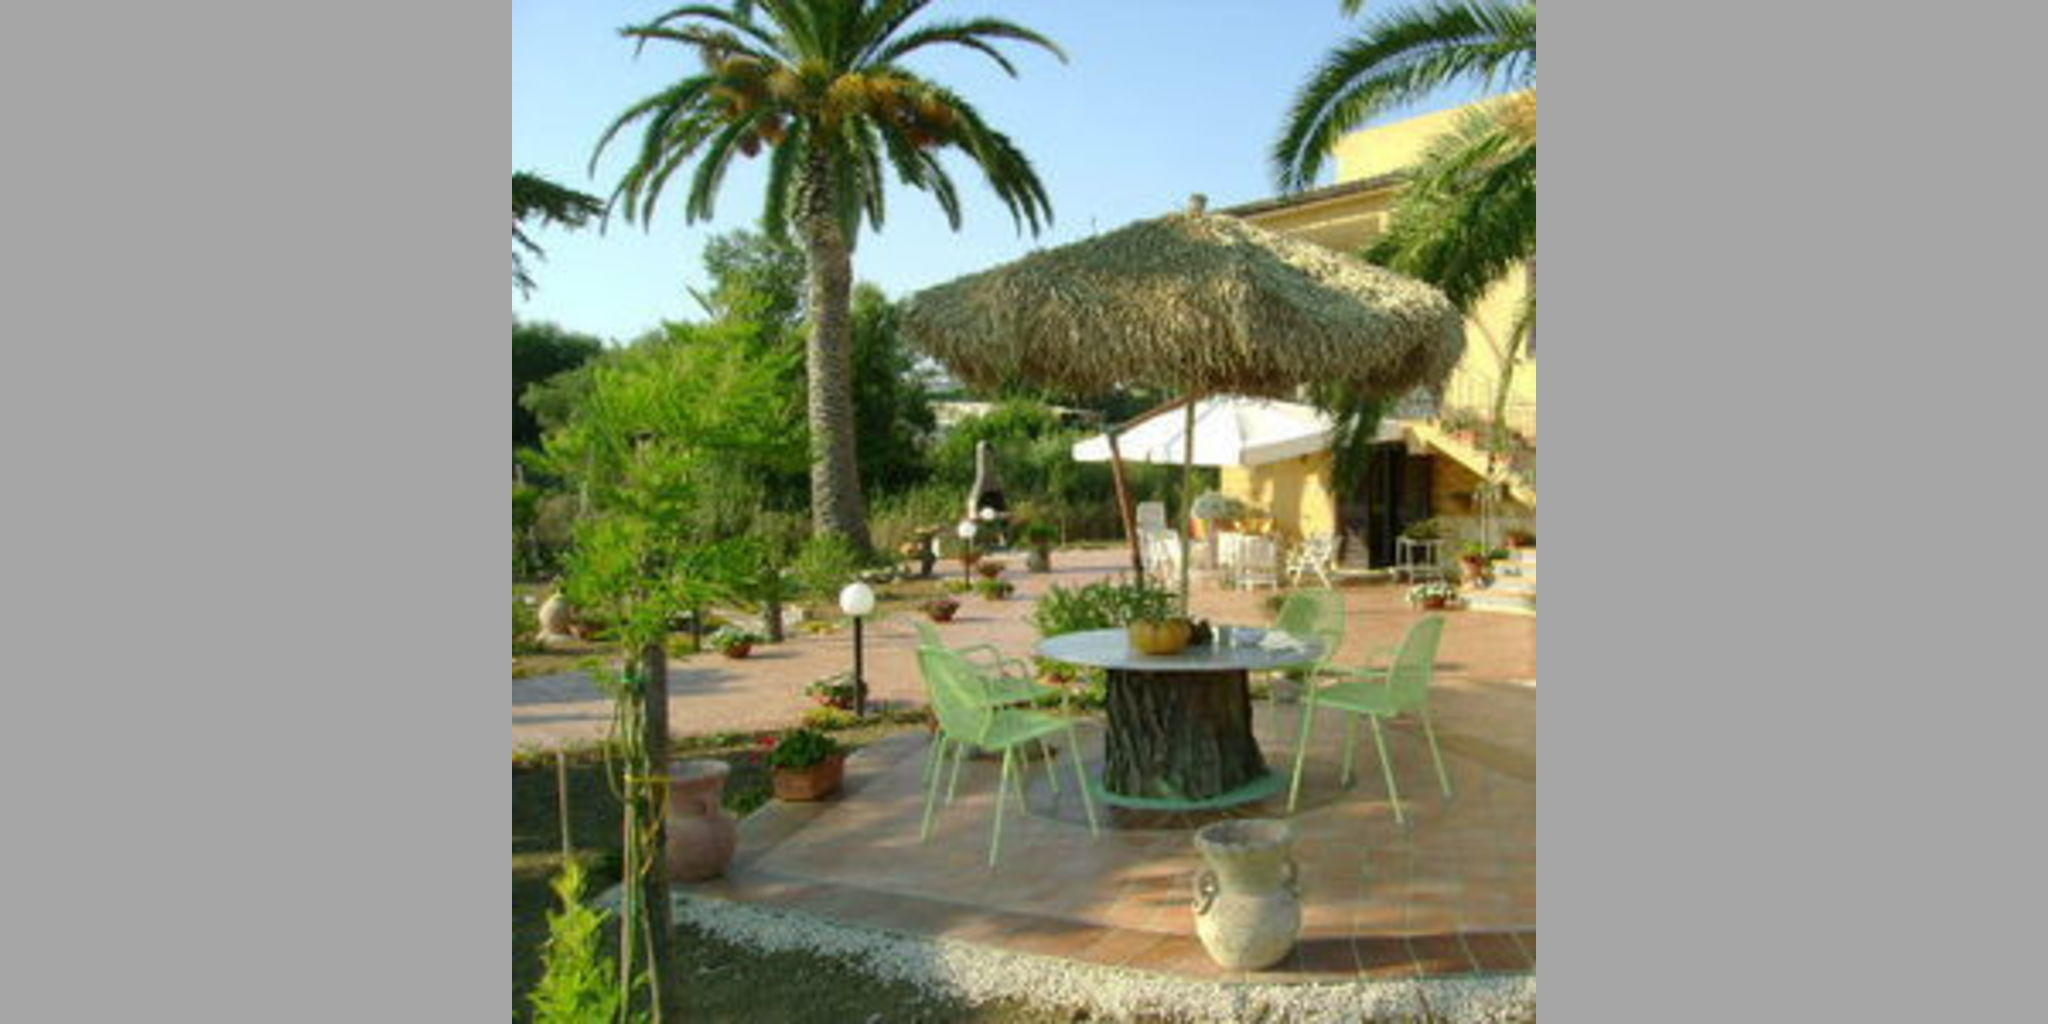 Bed & Breakfast Agrigento - San Leone_Agrigento